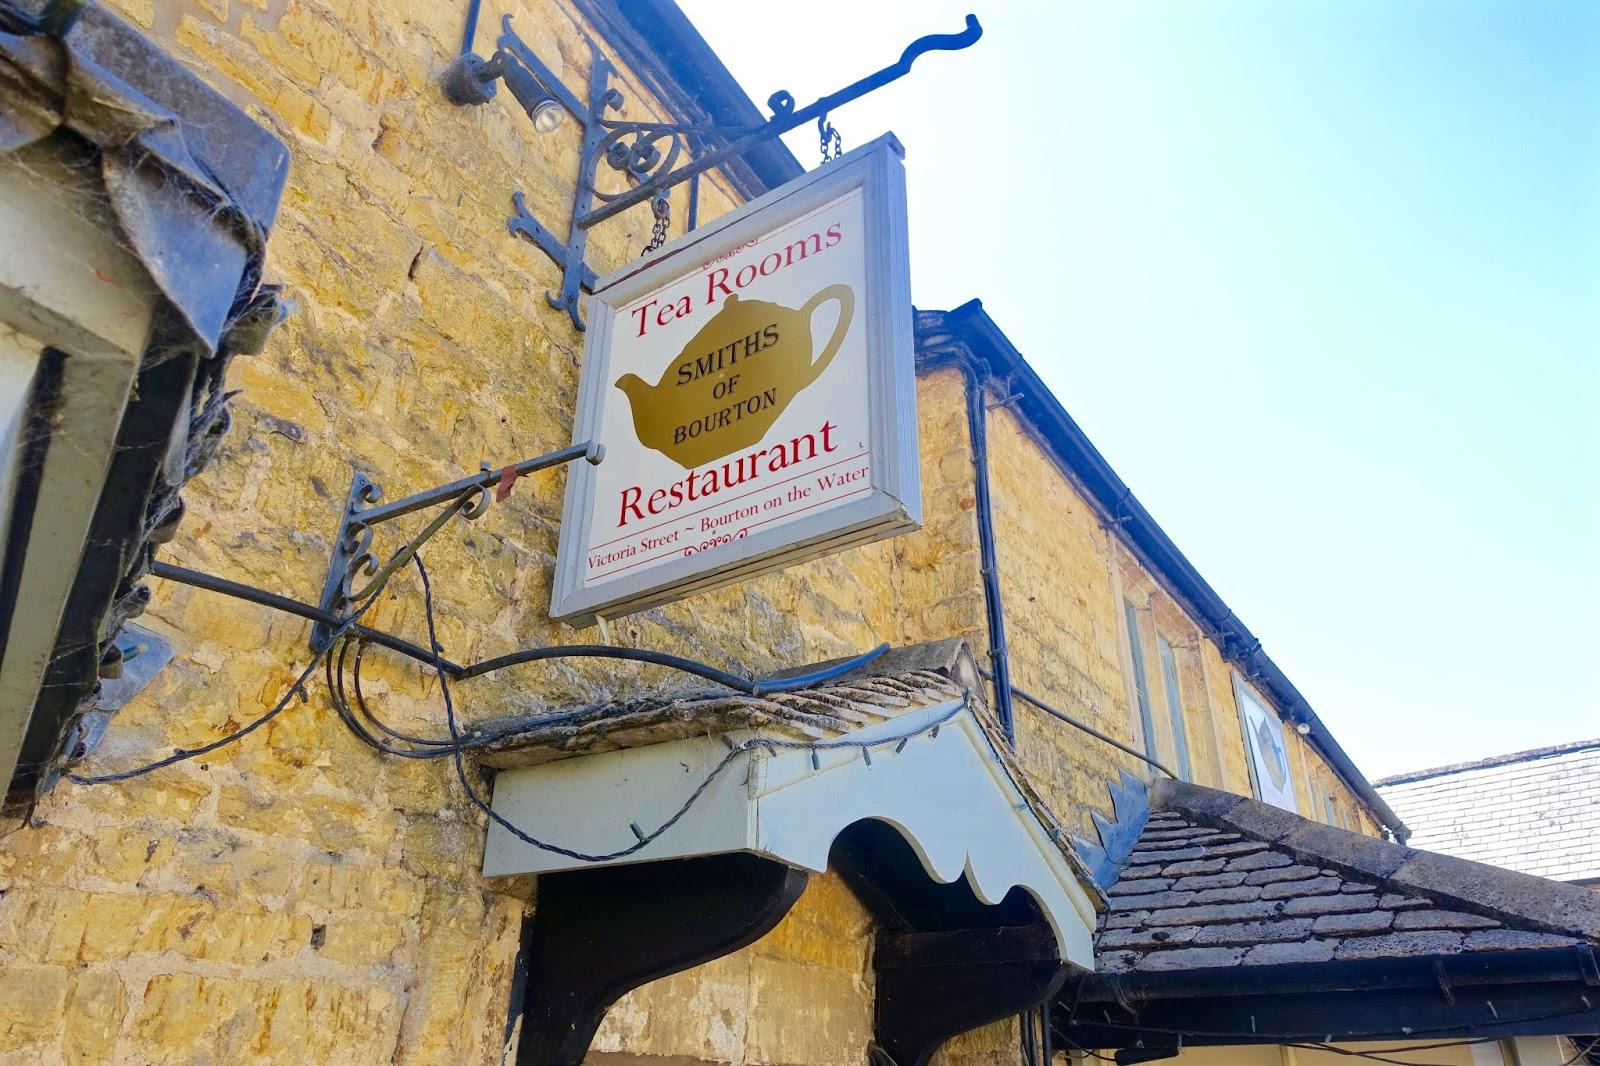 Smiths of bourton tea room and restaurant